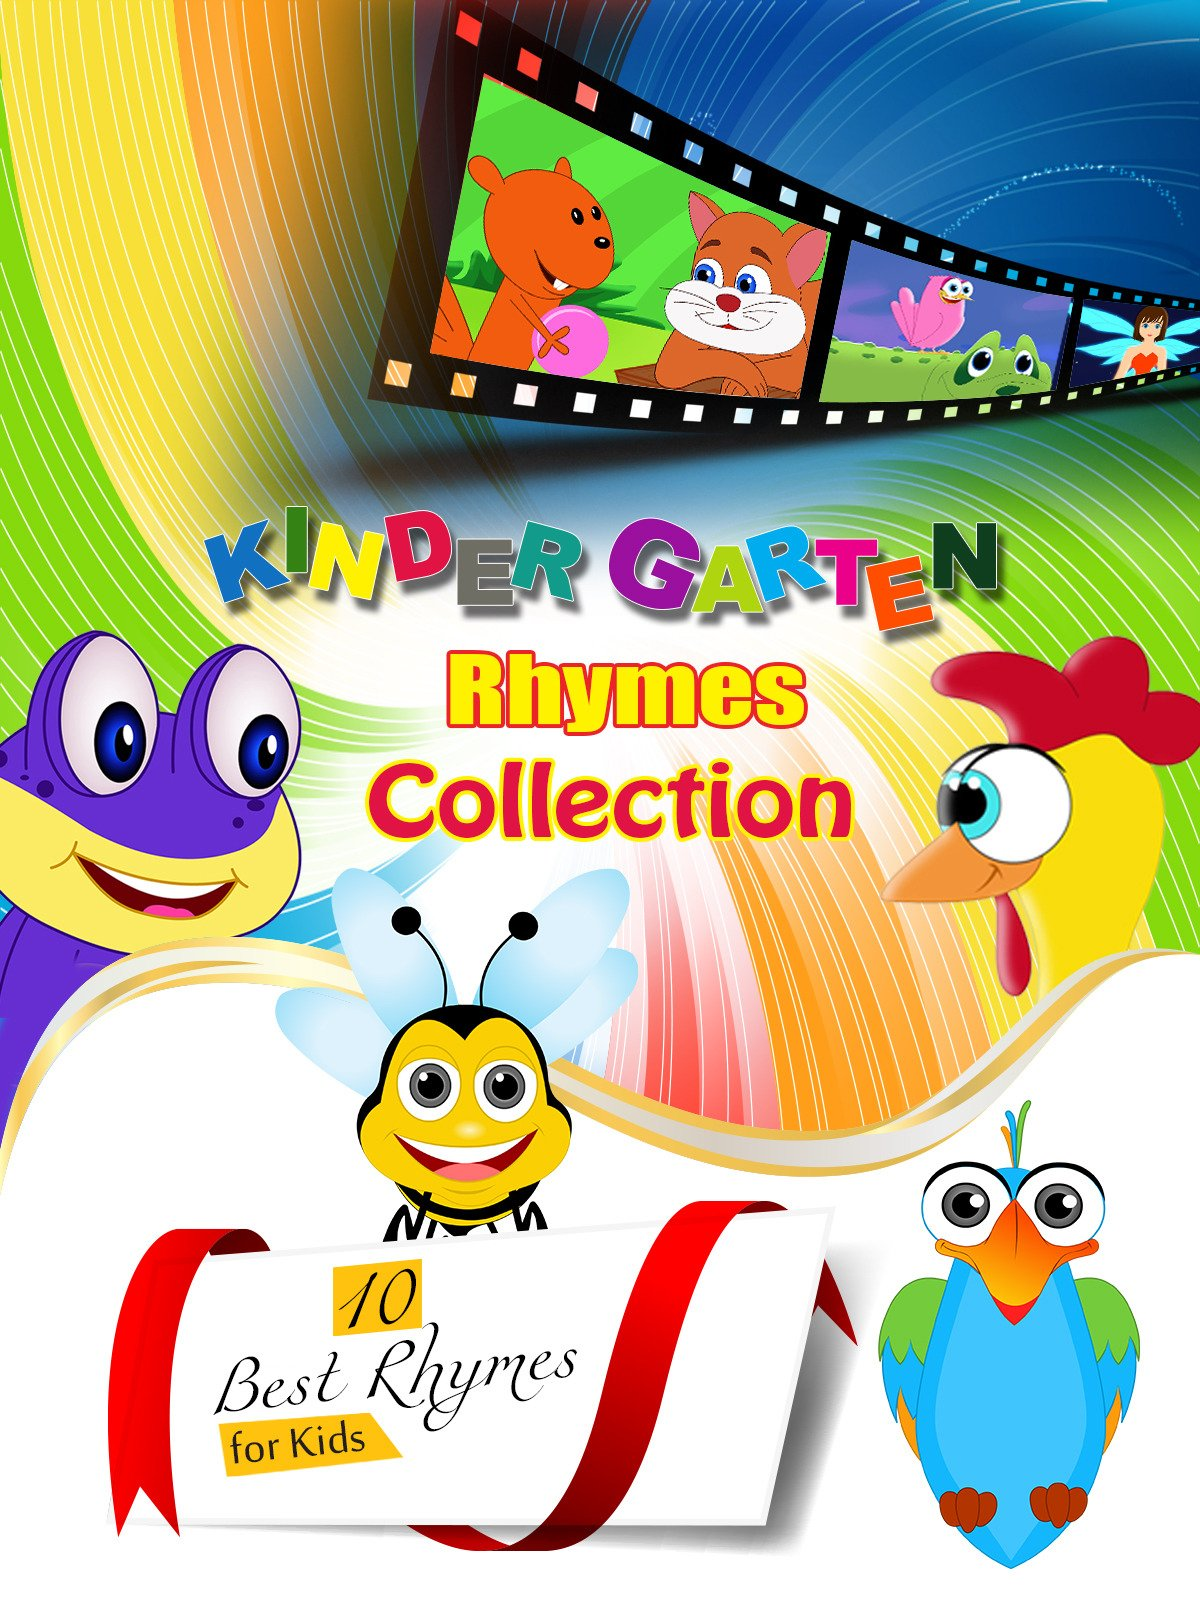 Kindergarten Rhymes Collection